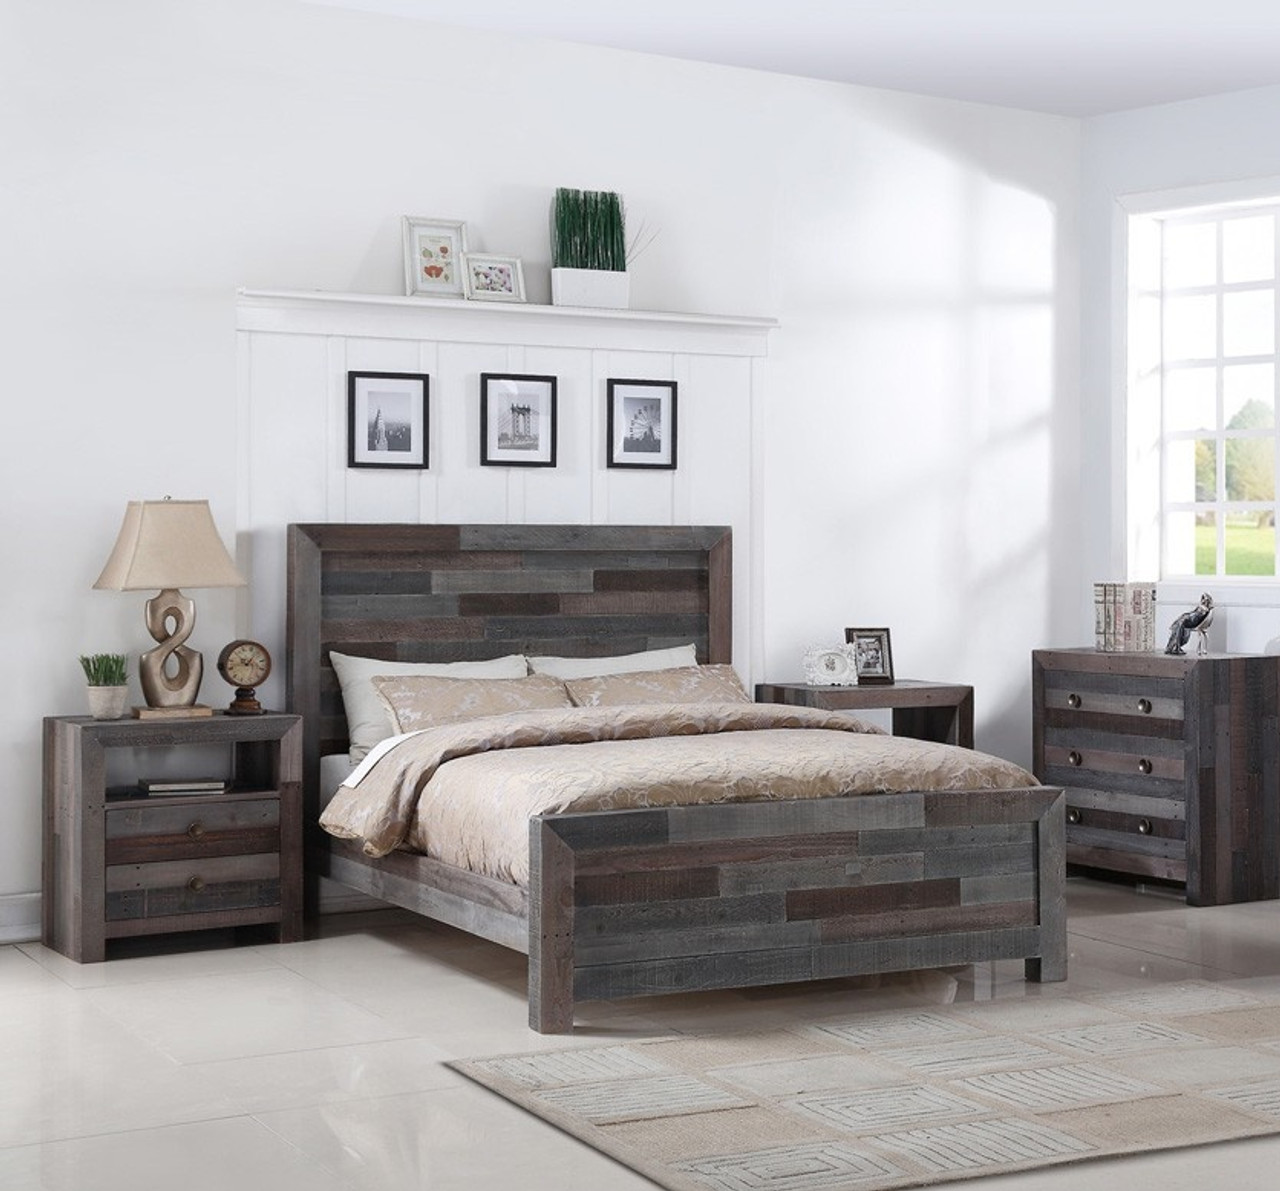 Bon Angora Reclaimed Wood Queen Size Platform Bed